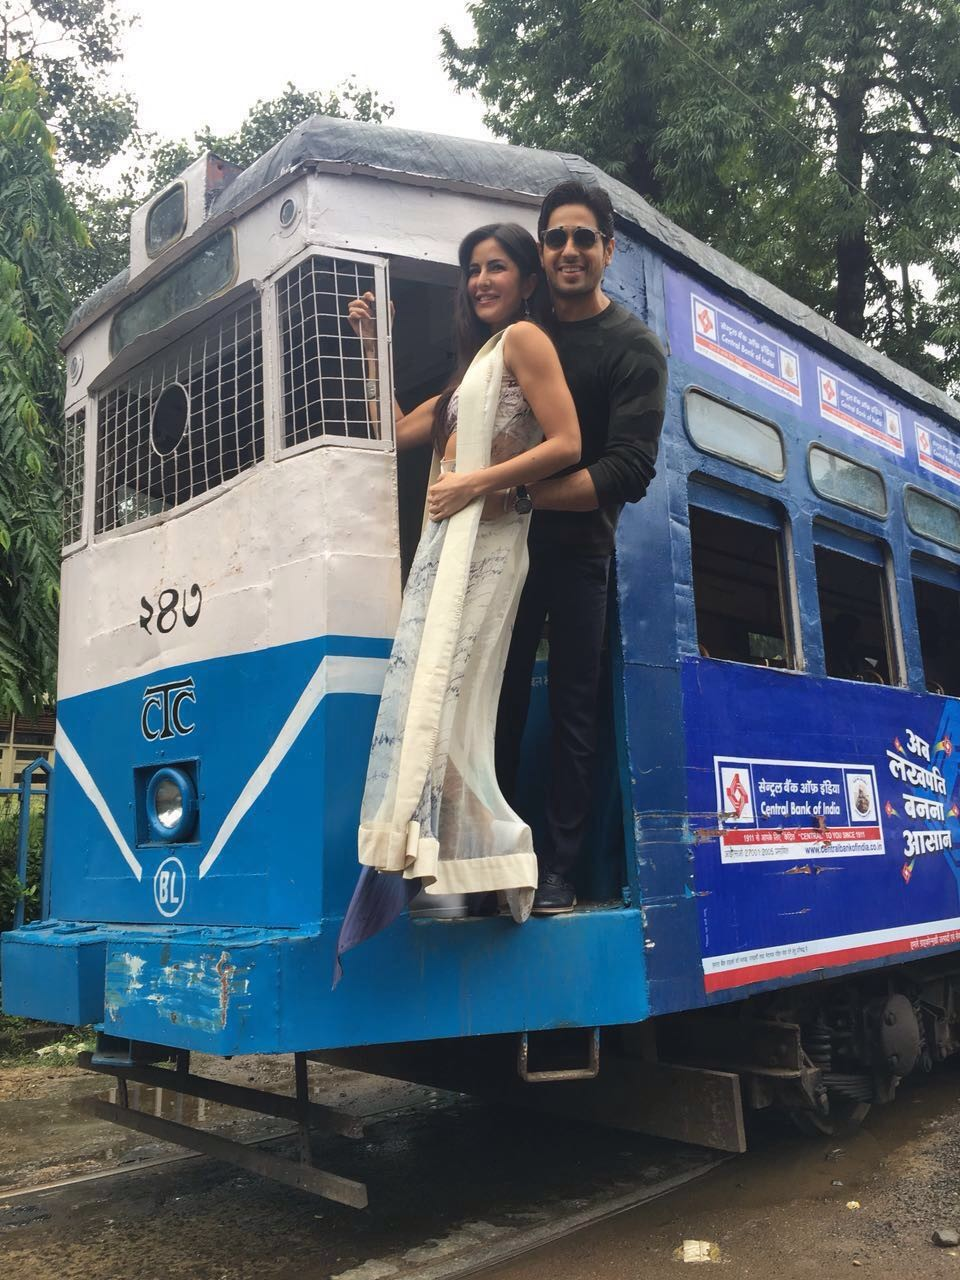 Baar Baar Dekho,Sidharth Malhotra and Katrina Kaif,Sidharth Malhotra,Katrina Kaif,Sidharth Malhotra partied in Kolkata's Train,Baar Baar Dekho working stills,Baar Baar Dekho on the sets,Baar Baar Dekho pics,Baar Baar Dekho images,Baar Baar Dekho phot